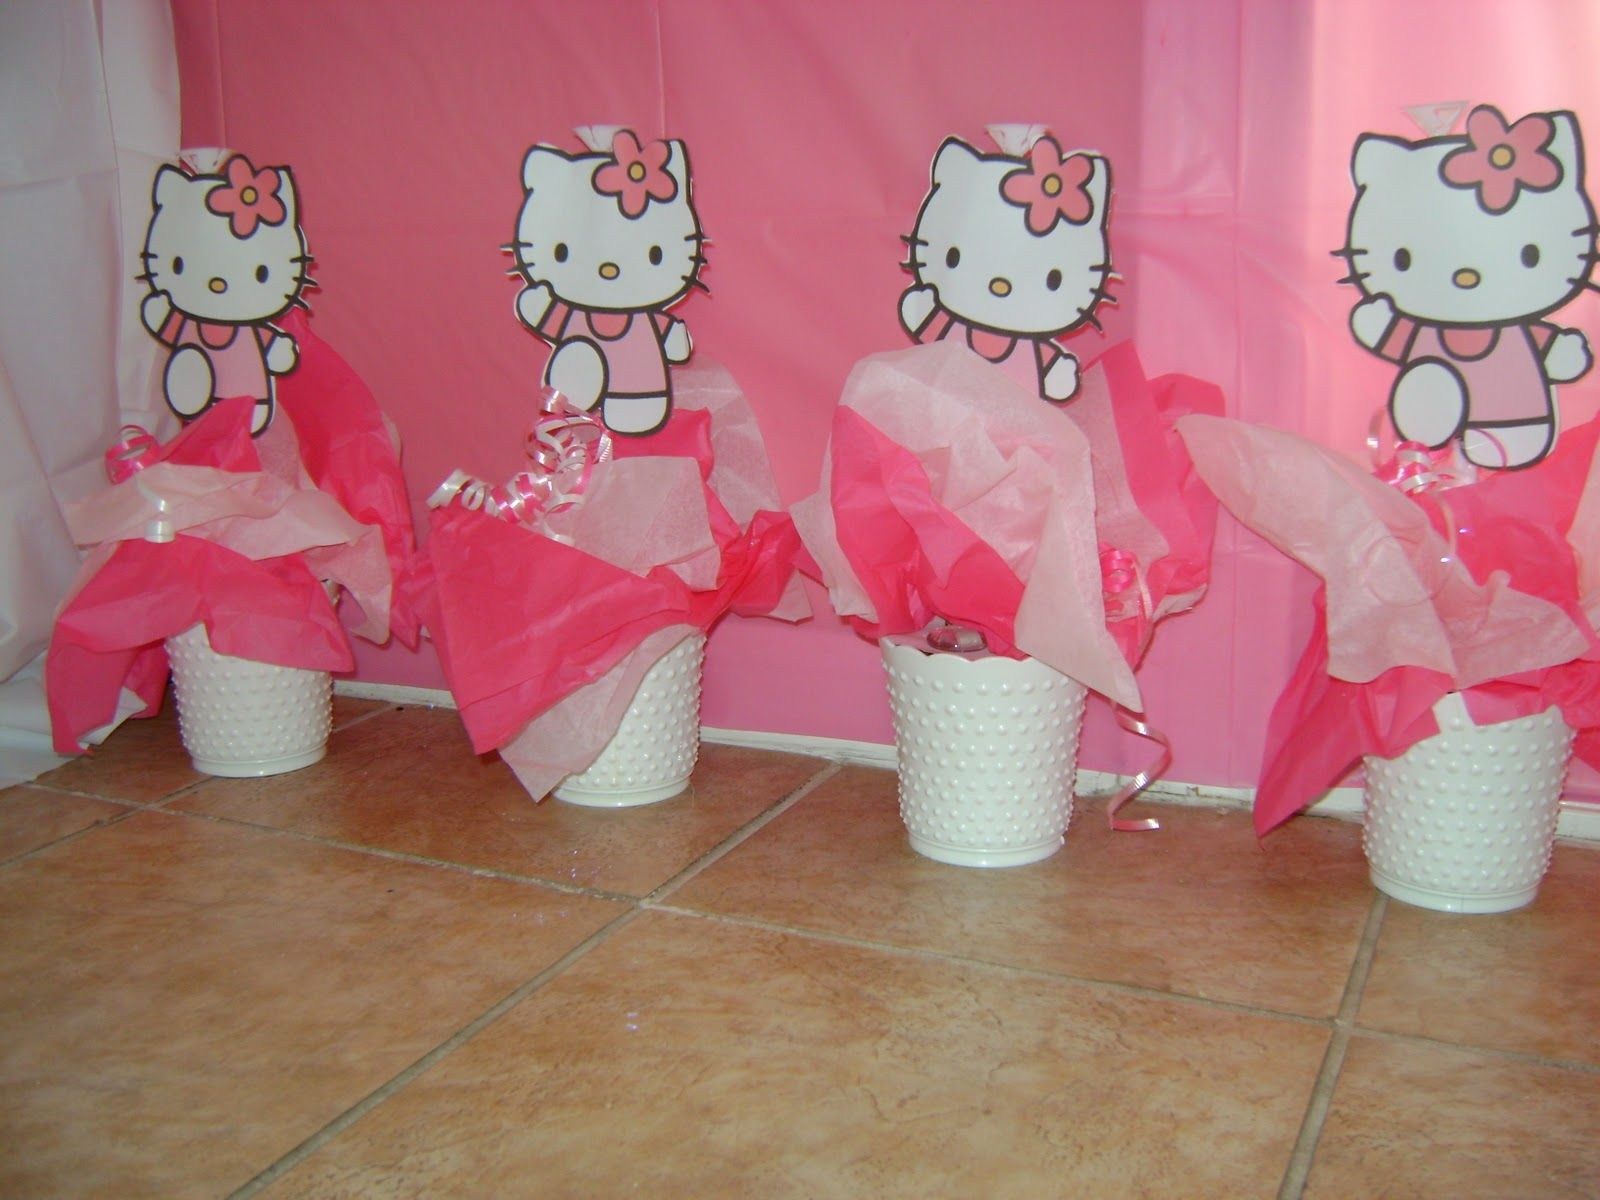 17 Best Images About Sanrio On Pinterest Twin Hello Kitty